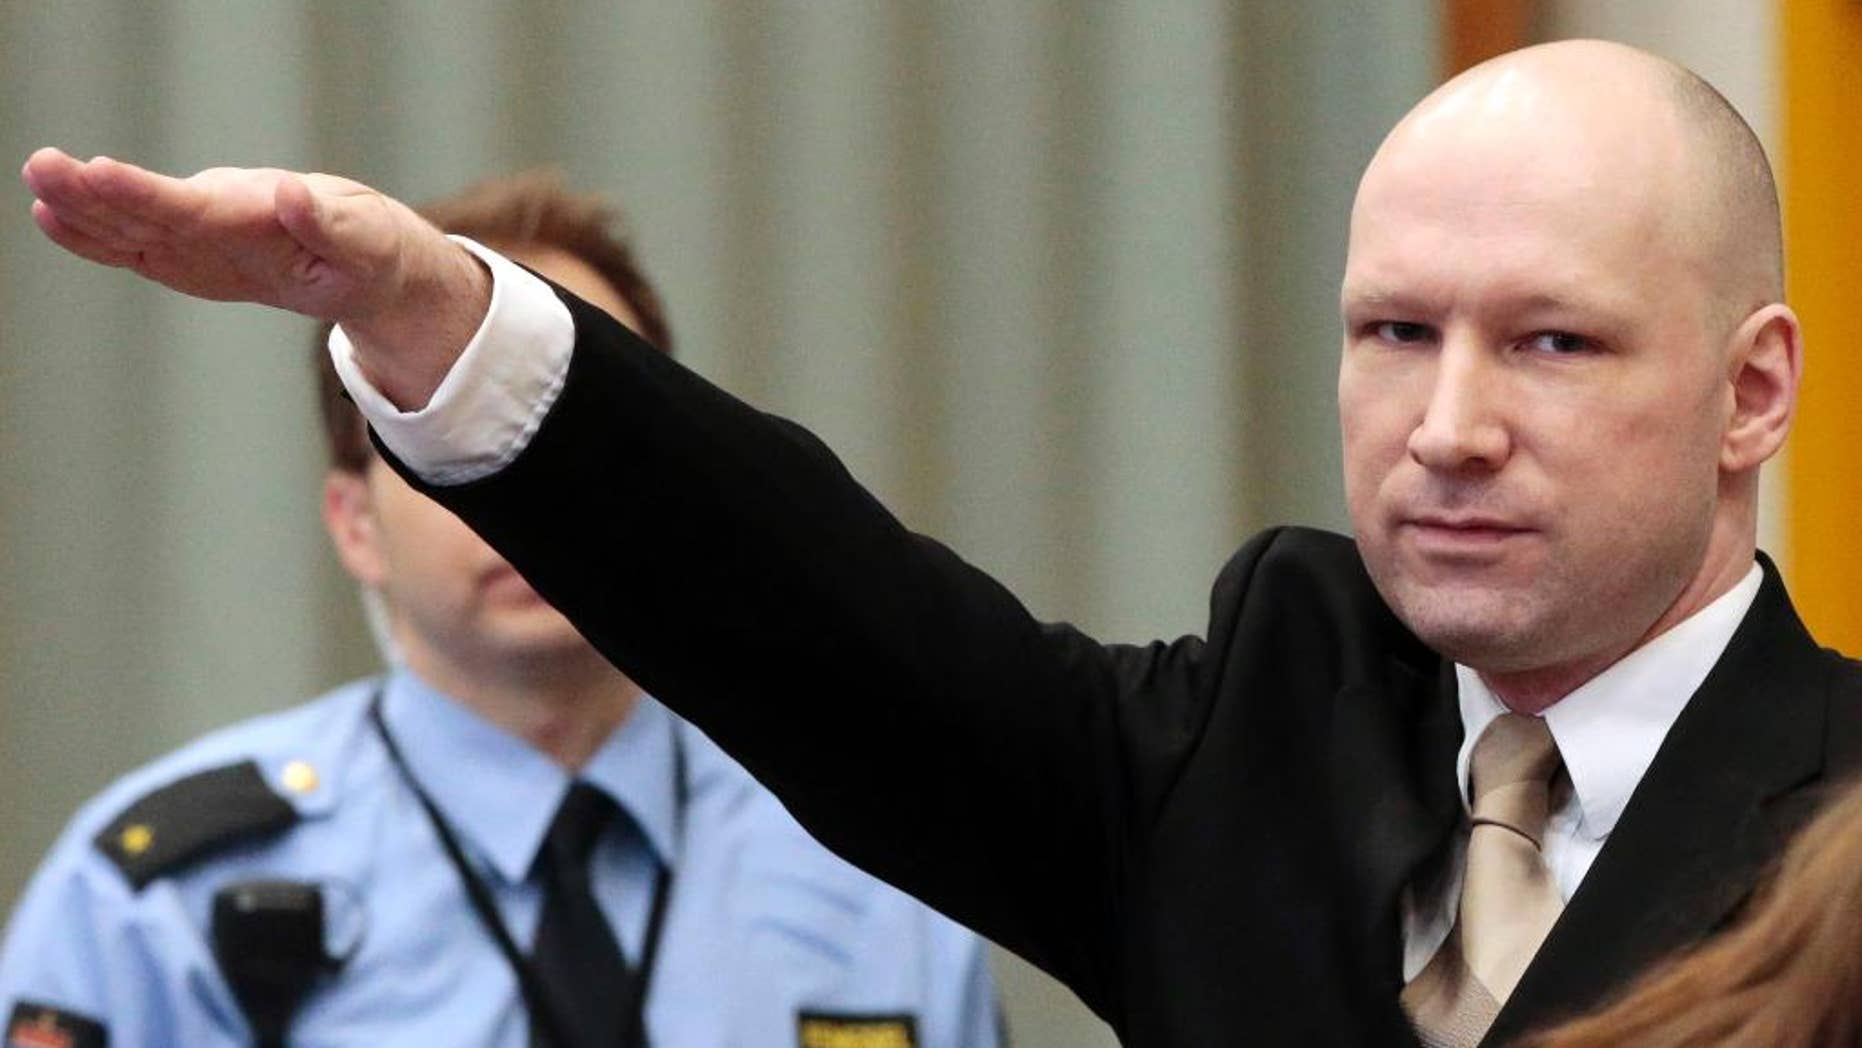 FILE - In this Tuesday, March 15, 2015 file photo, Anders Behring Breivik gestures as he enters a courtroom in Skien, Norway. Breivik, who killed 77 people in a bombing and shooting rampage in 2011, is returning to court this week as the government appeals a ruling that his isolation in prison breaches the European Convention on Human Rights. (Lise Aserud, NTB Scanpix via AP, File)